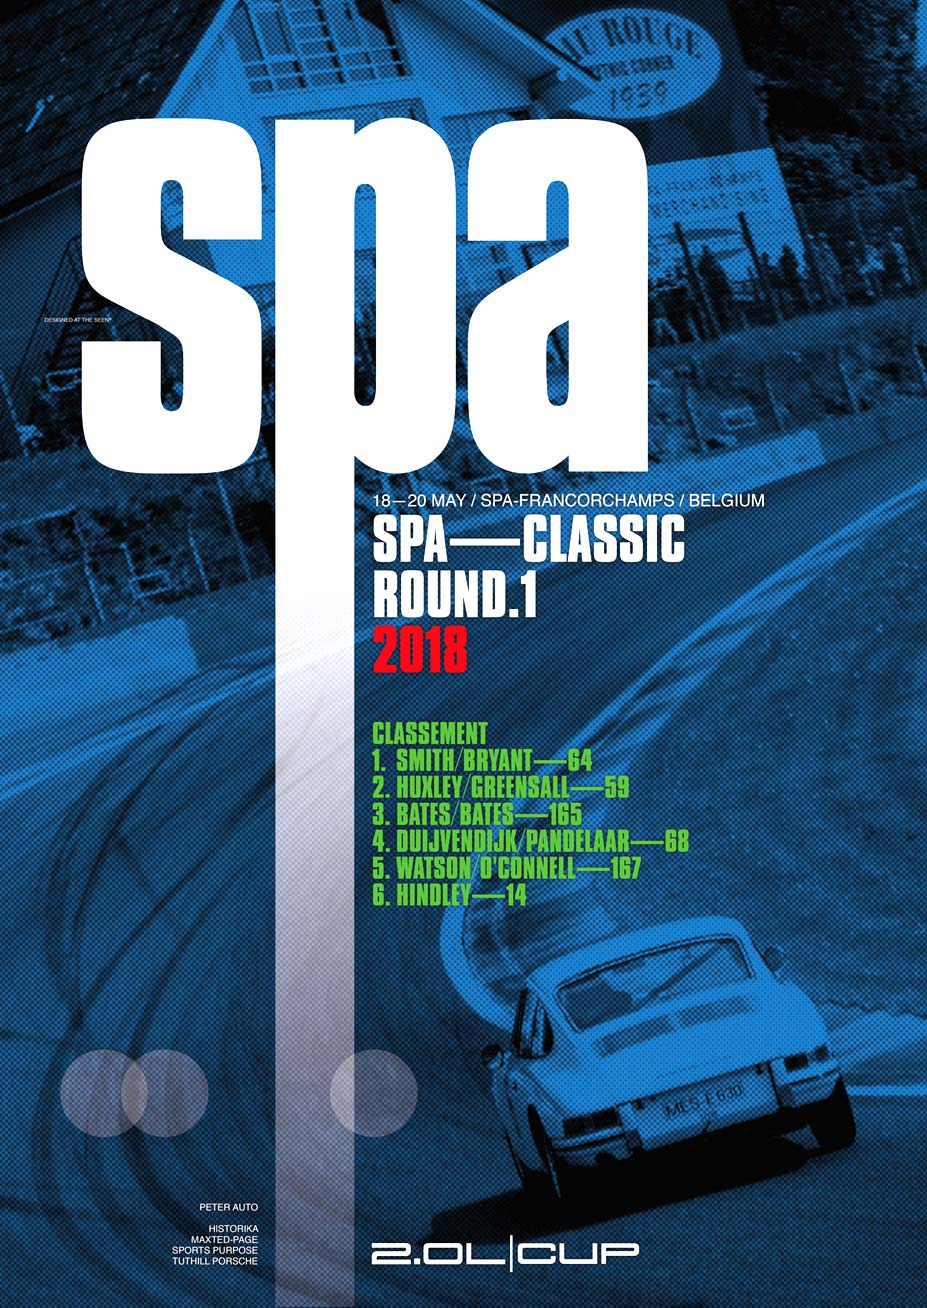 2018 2-Litre Cup Round 1 Spa Poster